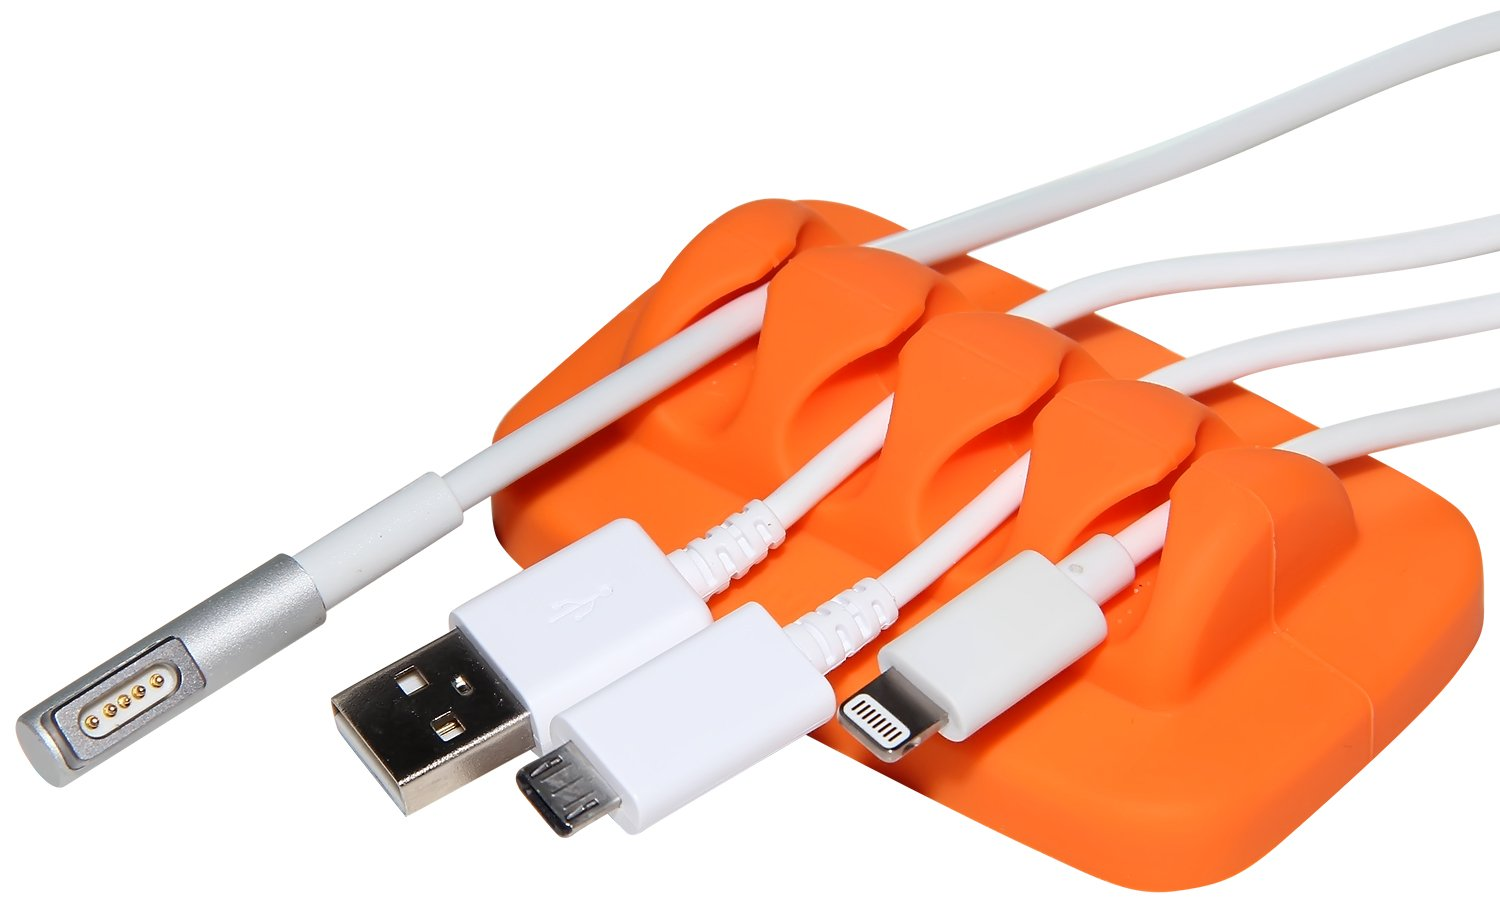 Global Eco-friendly Cable Market 2021 Industry Analysis, Future  Developments, Key Tactics and Competitive Strategies to 2026 – The Manomet  Current